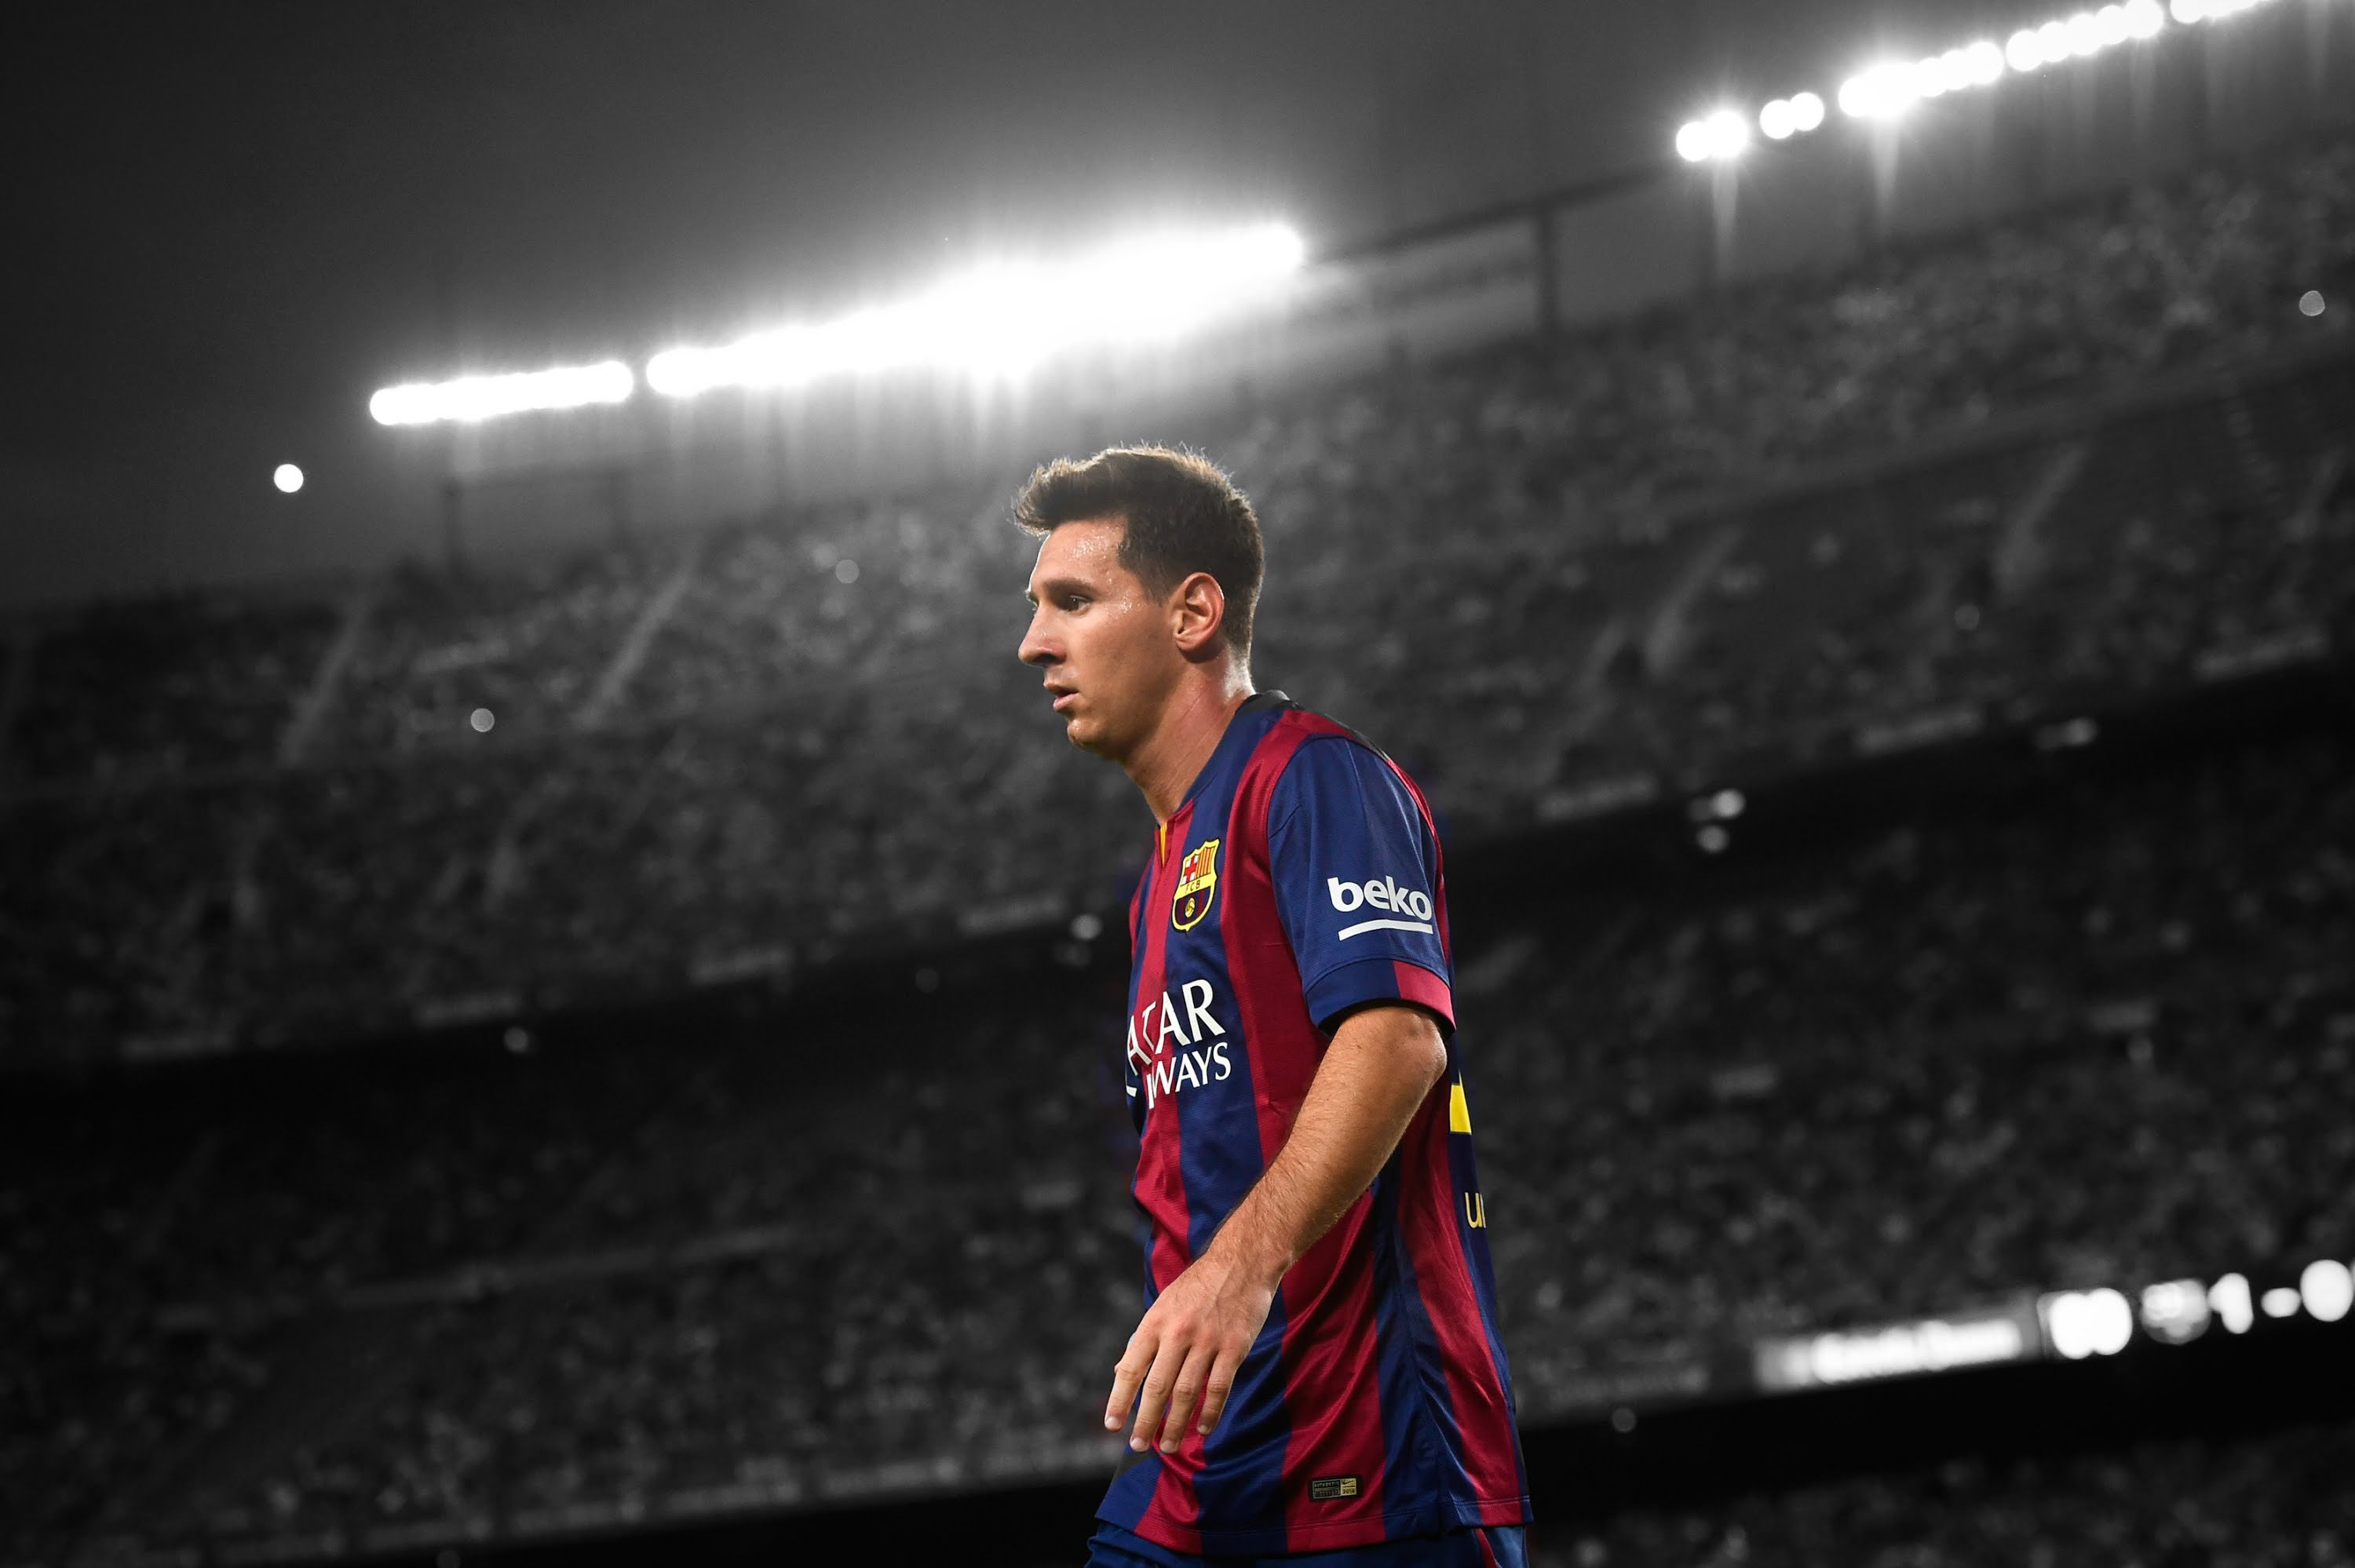 Lionel Messi Wallpapers For Laptop